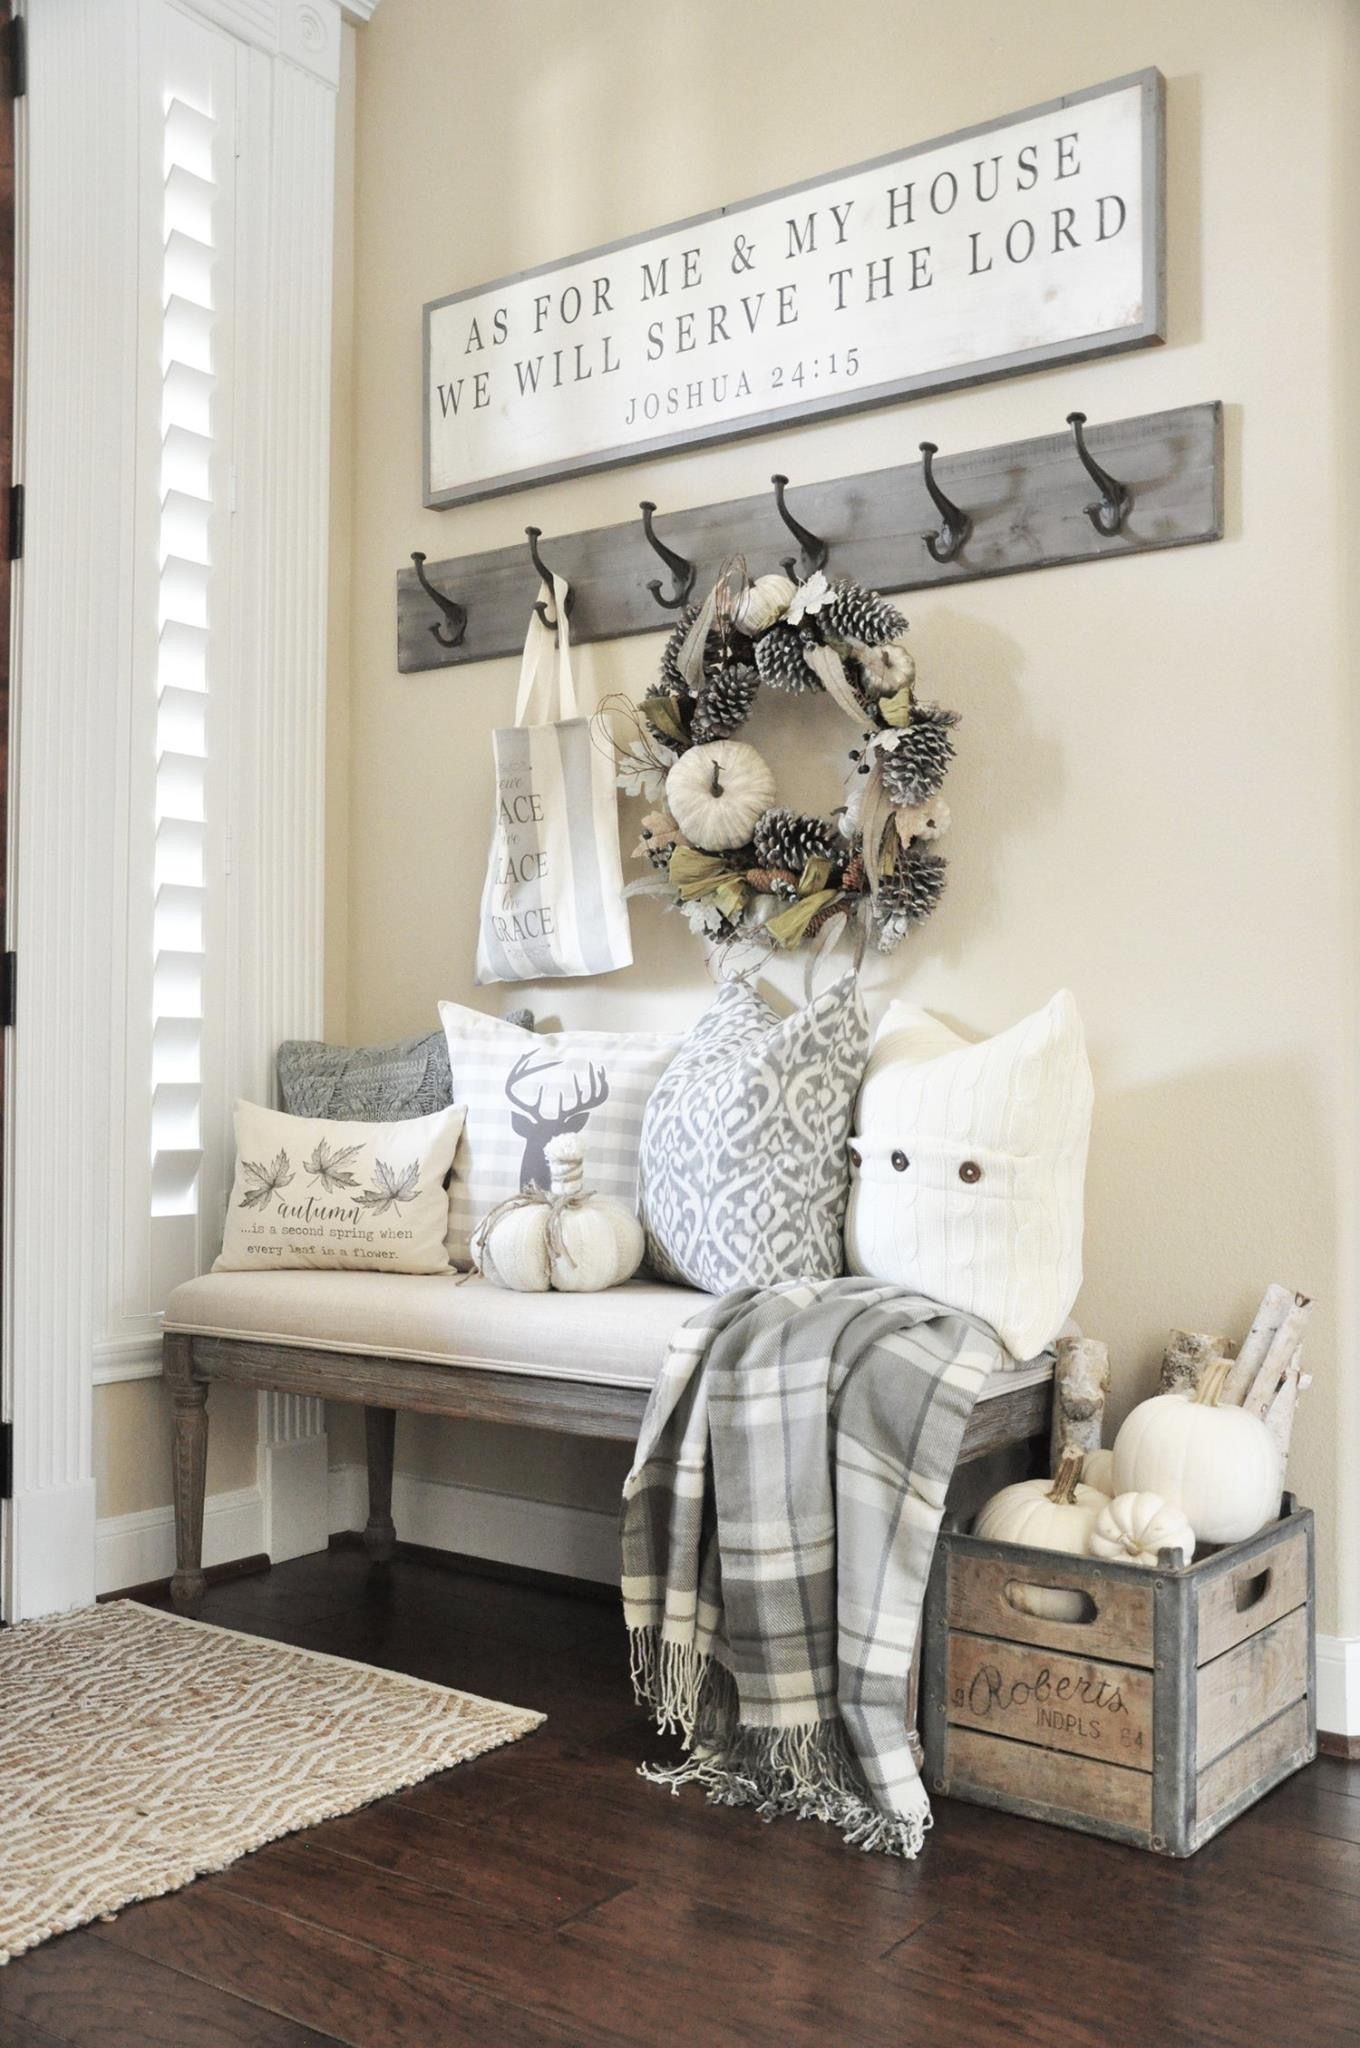 Pin By Valerie Newman On House Decoratingoo